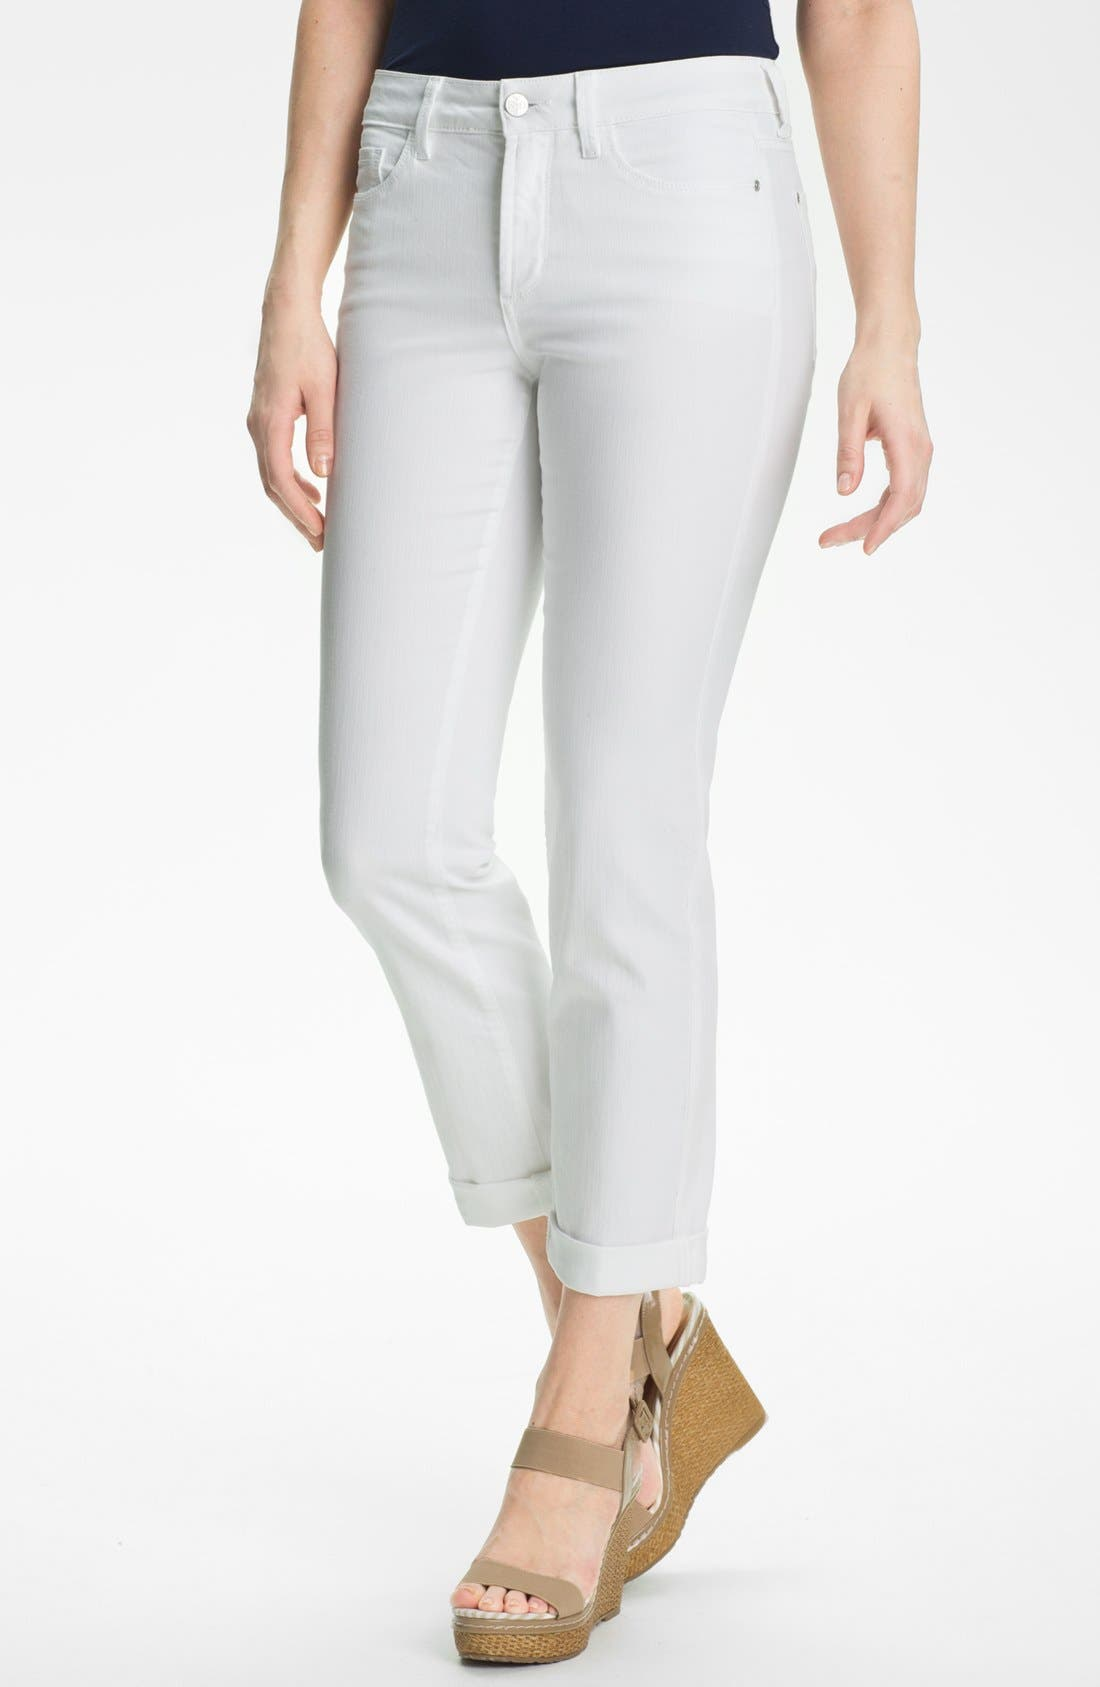 Alternate Image 1 Selected - NYDJ 'Tanya' Stretch Boyfriend Jeans (Petite)